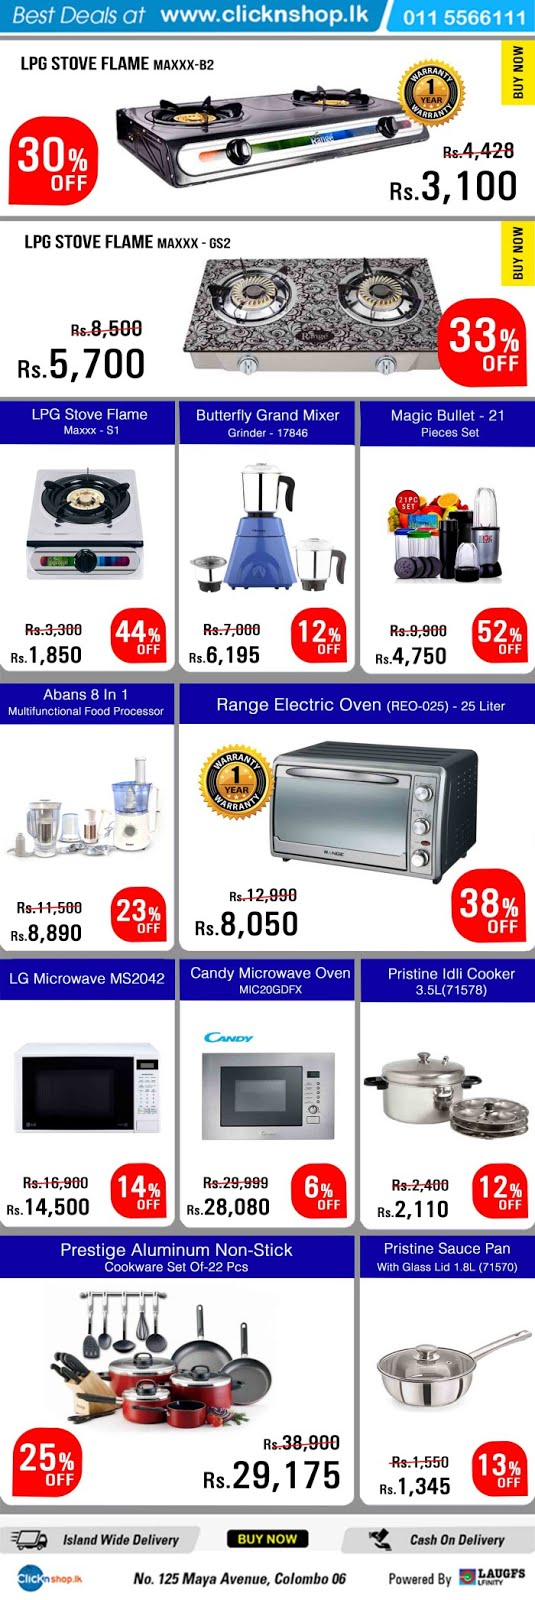 https://www.clicknshop.lk/kitchen-appliances.html